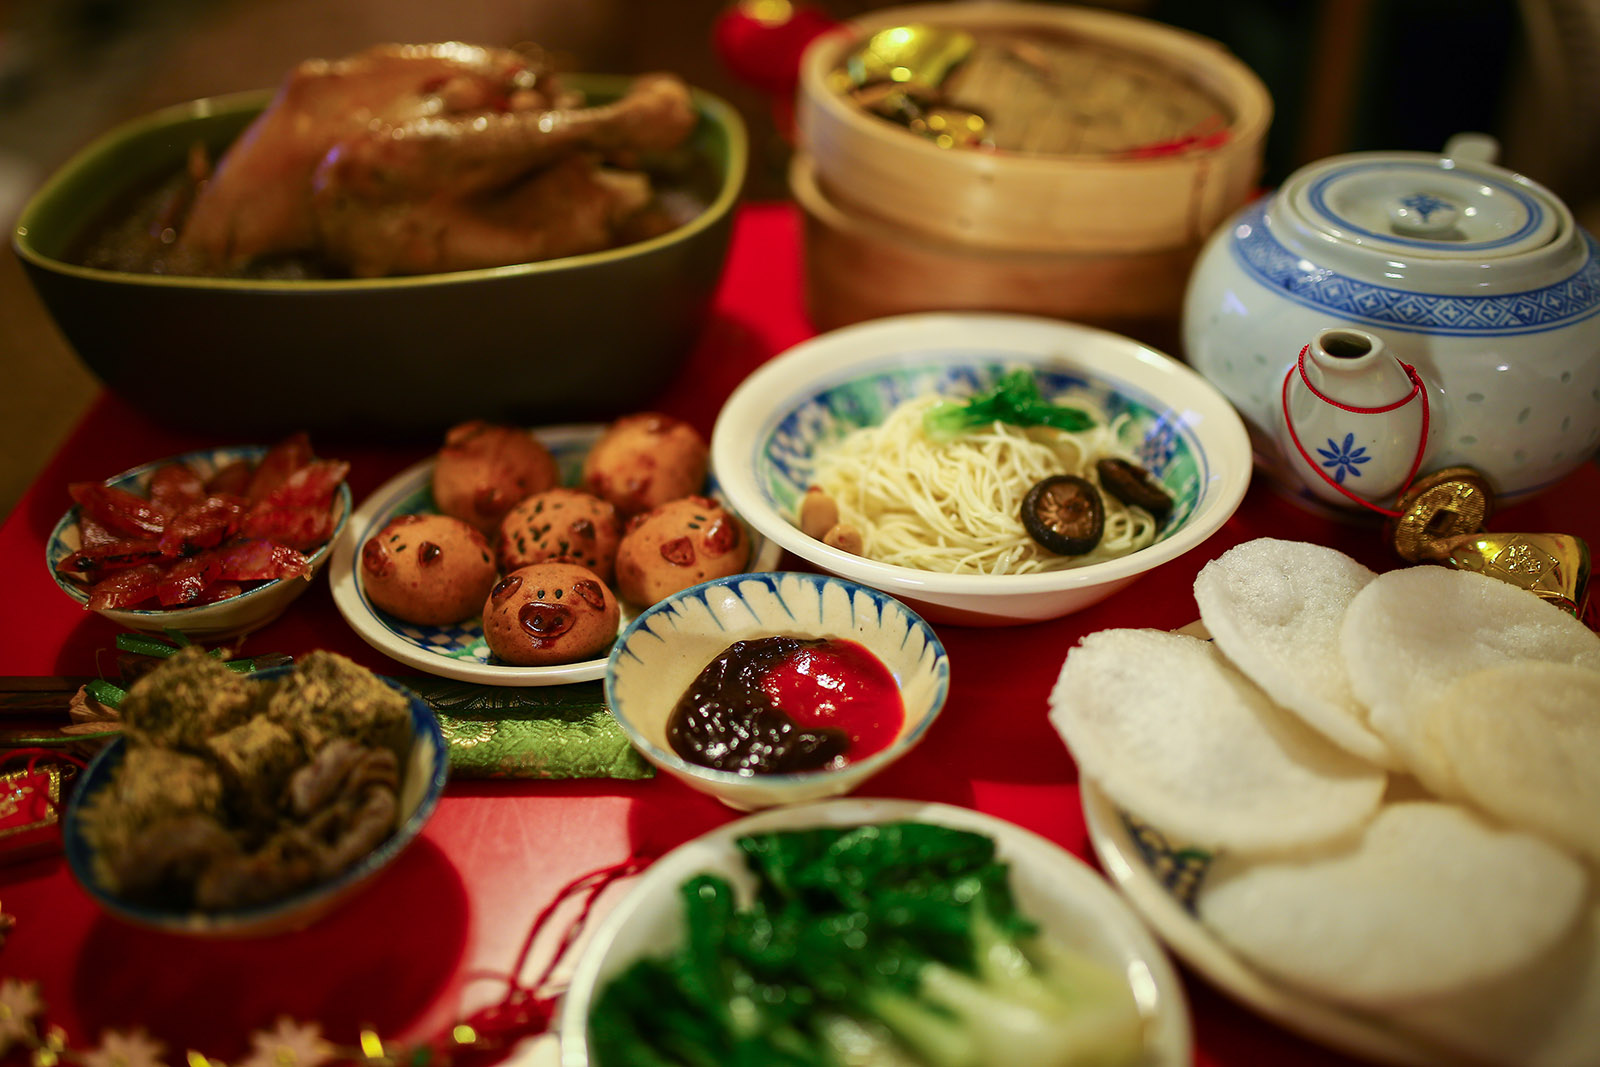 dishes of colorful chinese food on a wooden table